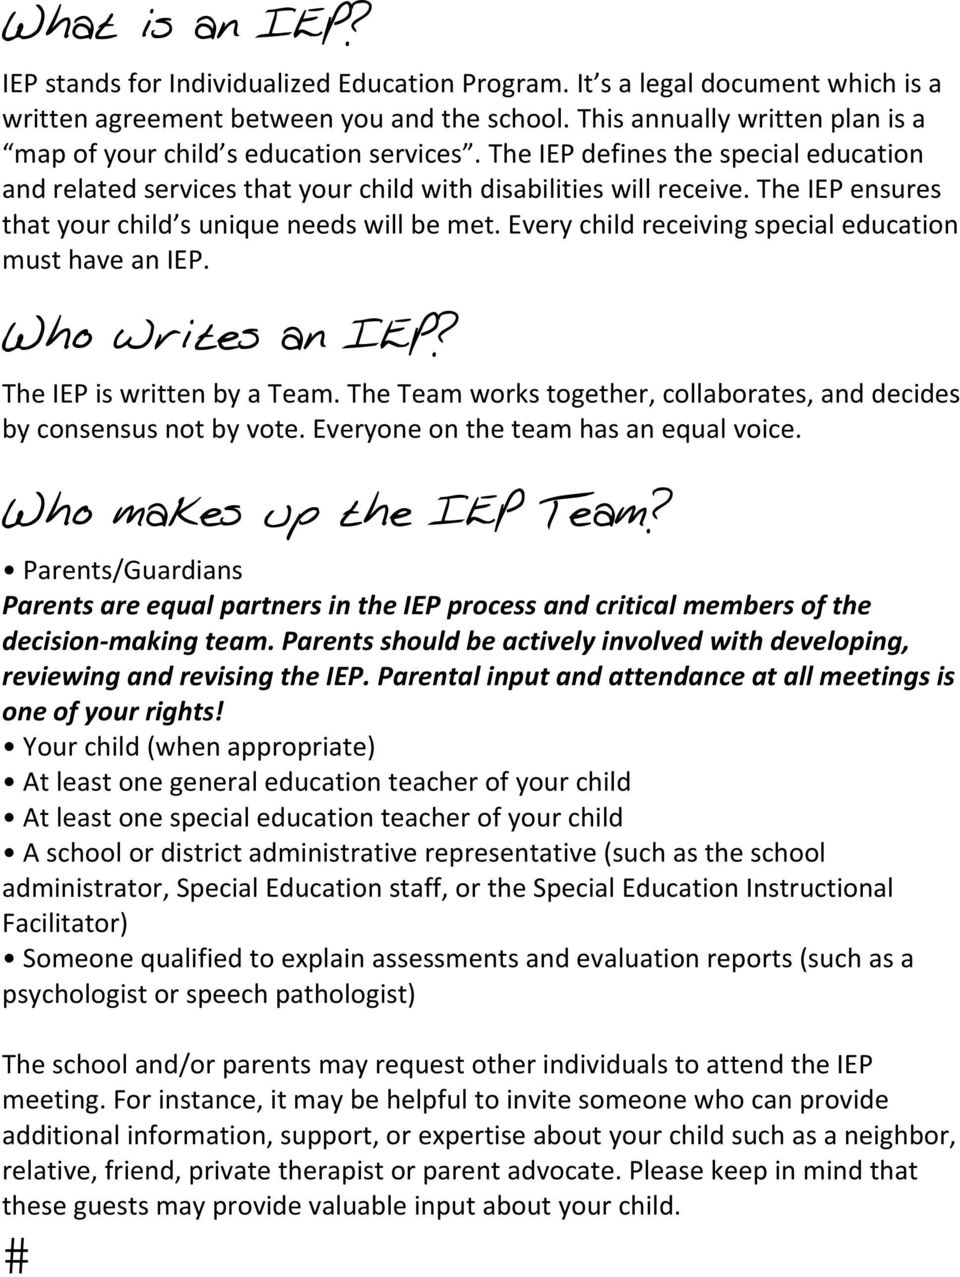 Parents As Equal Participants In Team >> The Iep Is Written By A Team The Team Works Together